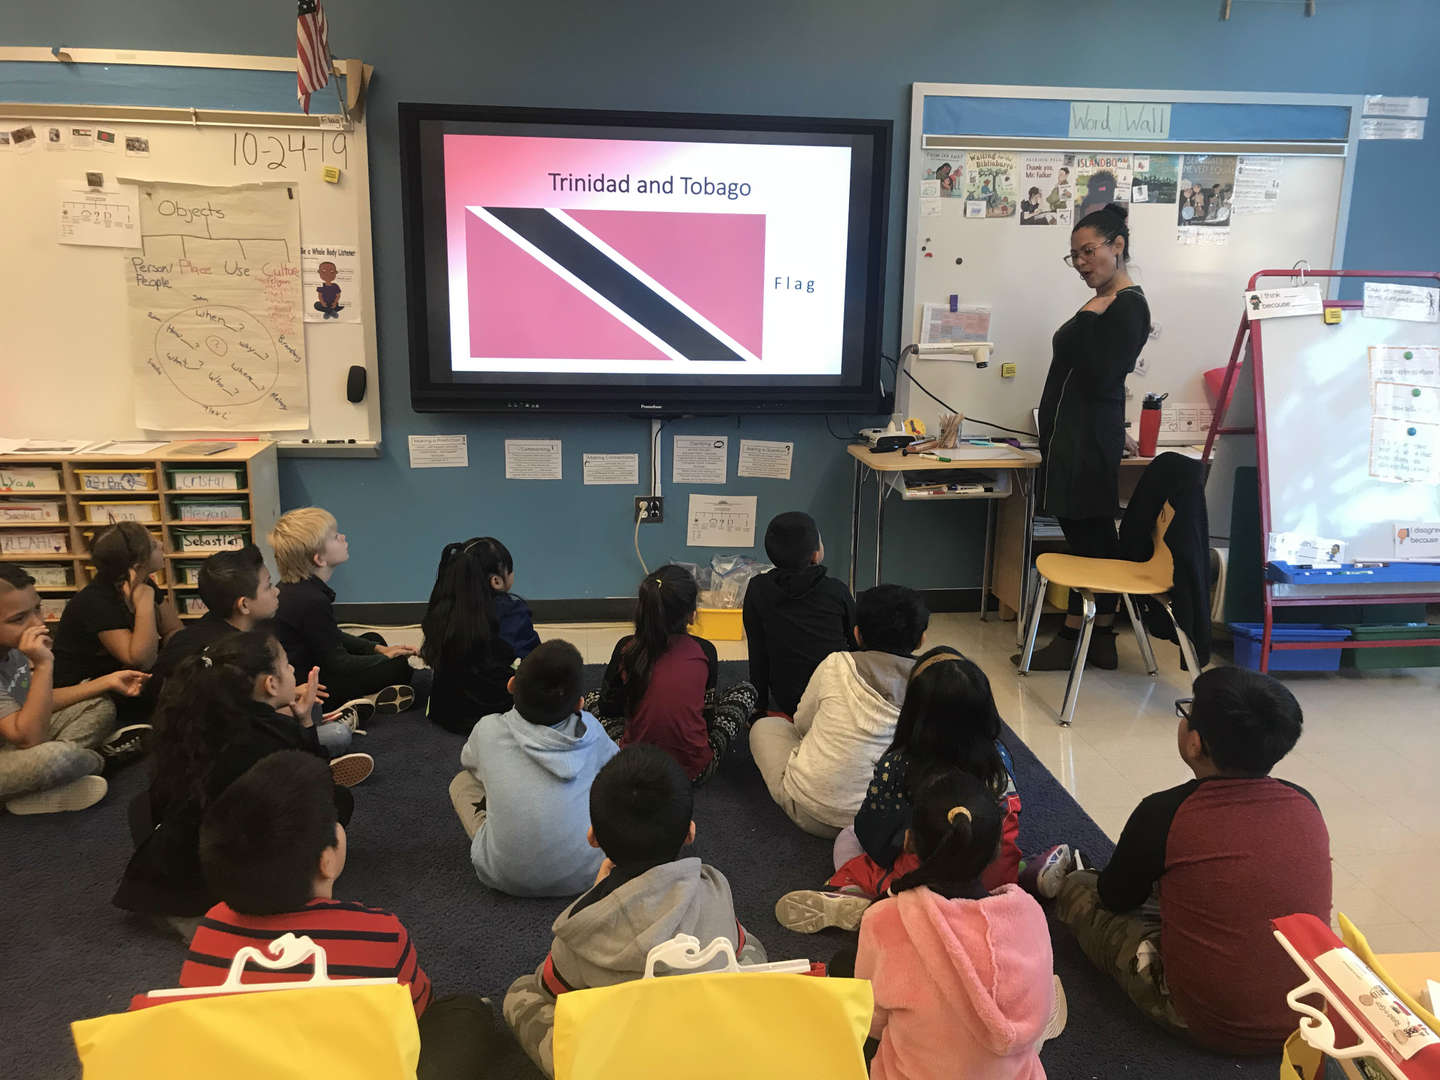 Students learning about the flag of Trinidad and Tobego